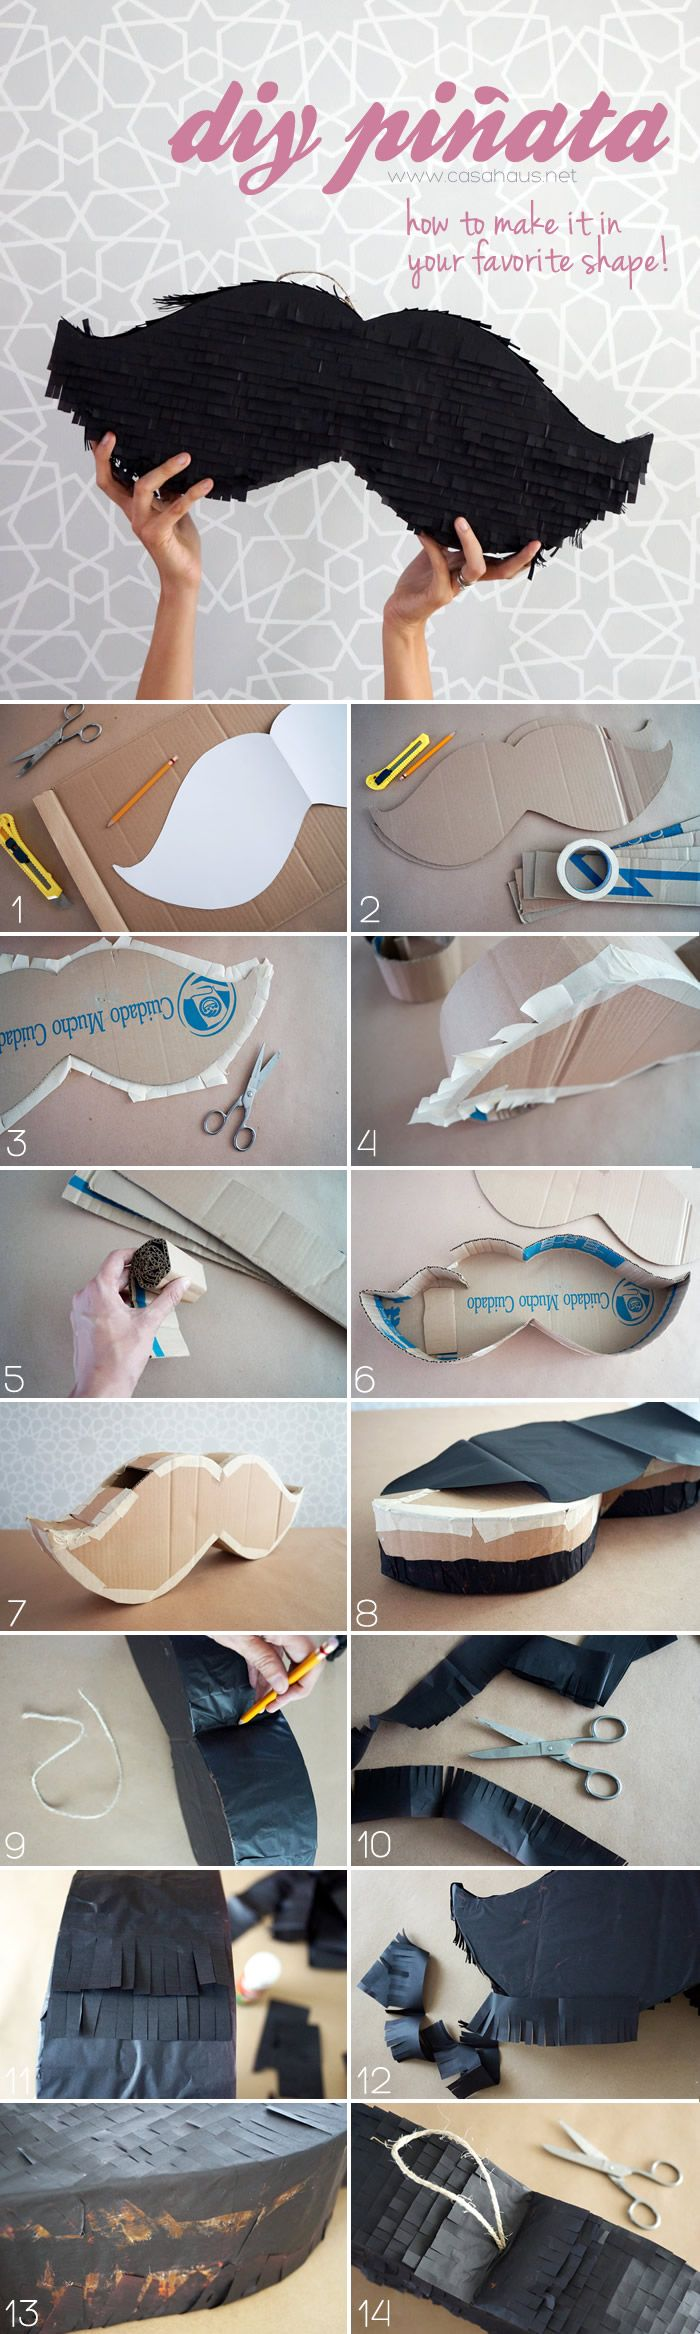 DIY piñata: How to make a piñata in any shape you want / Cómo hacer una piñata paso a paso y de la forma que quieras - Casa Haus Decoracion